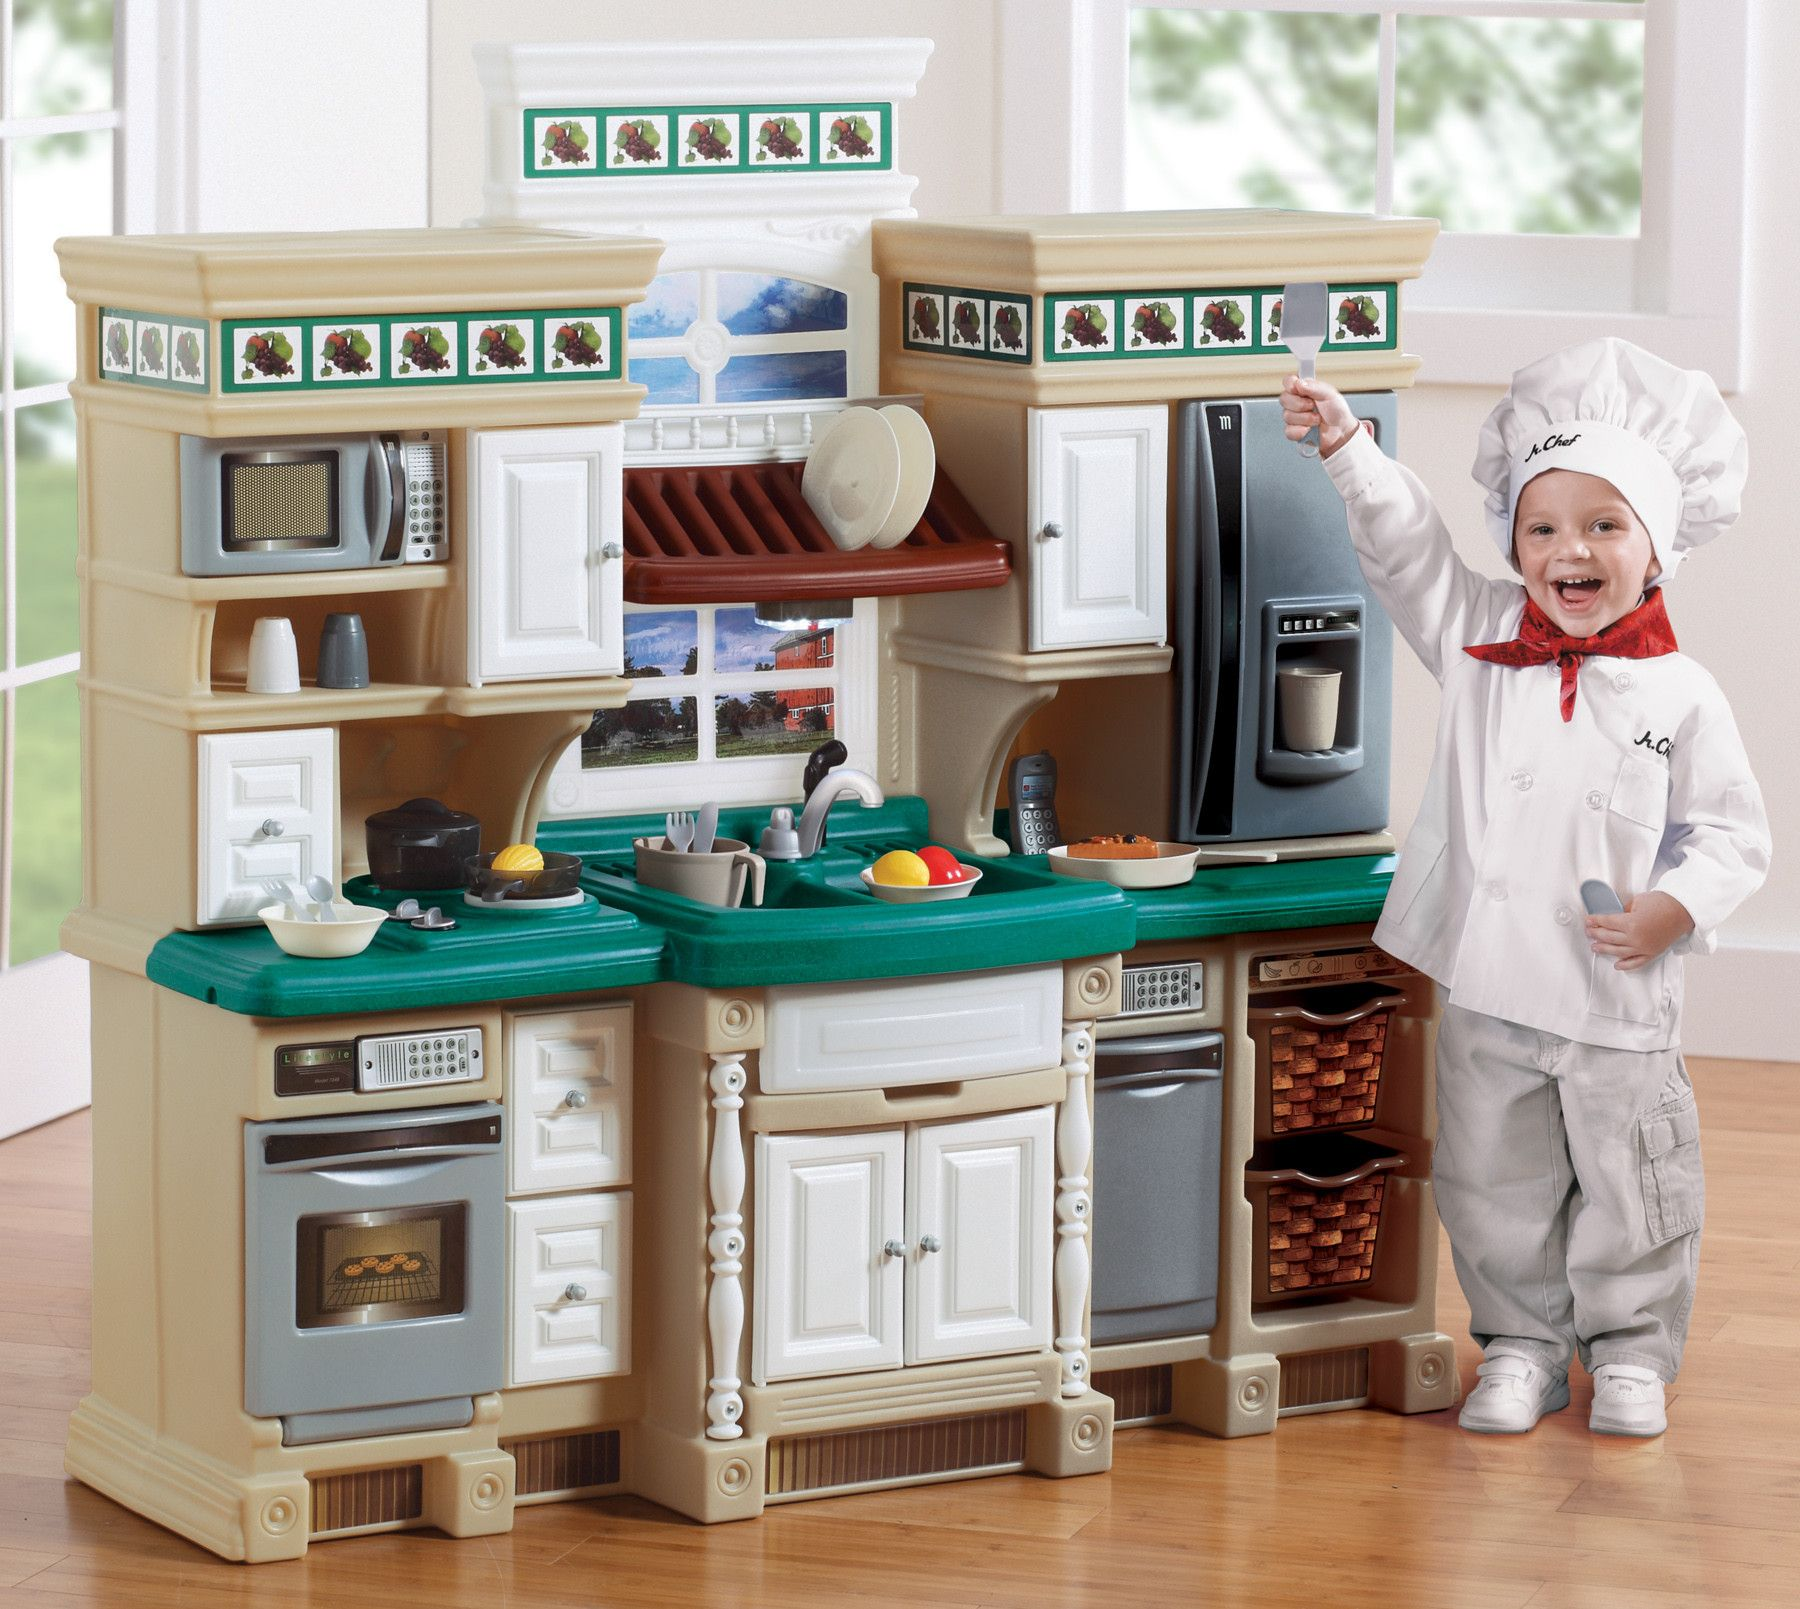 Step2 Lifestyle Deluxe Kitchen Set Reviews Wayfair Play